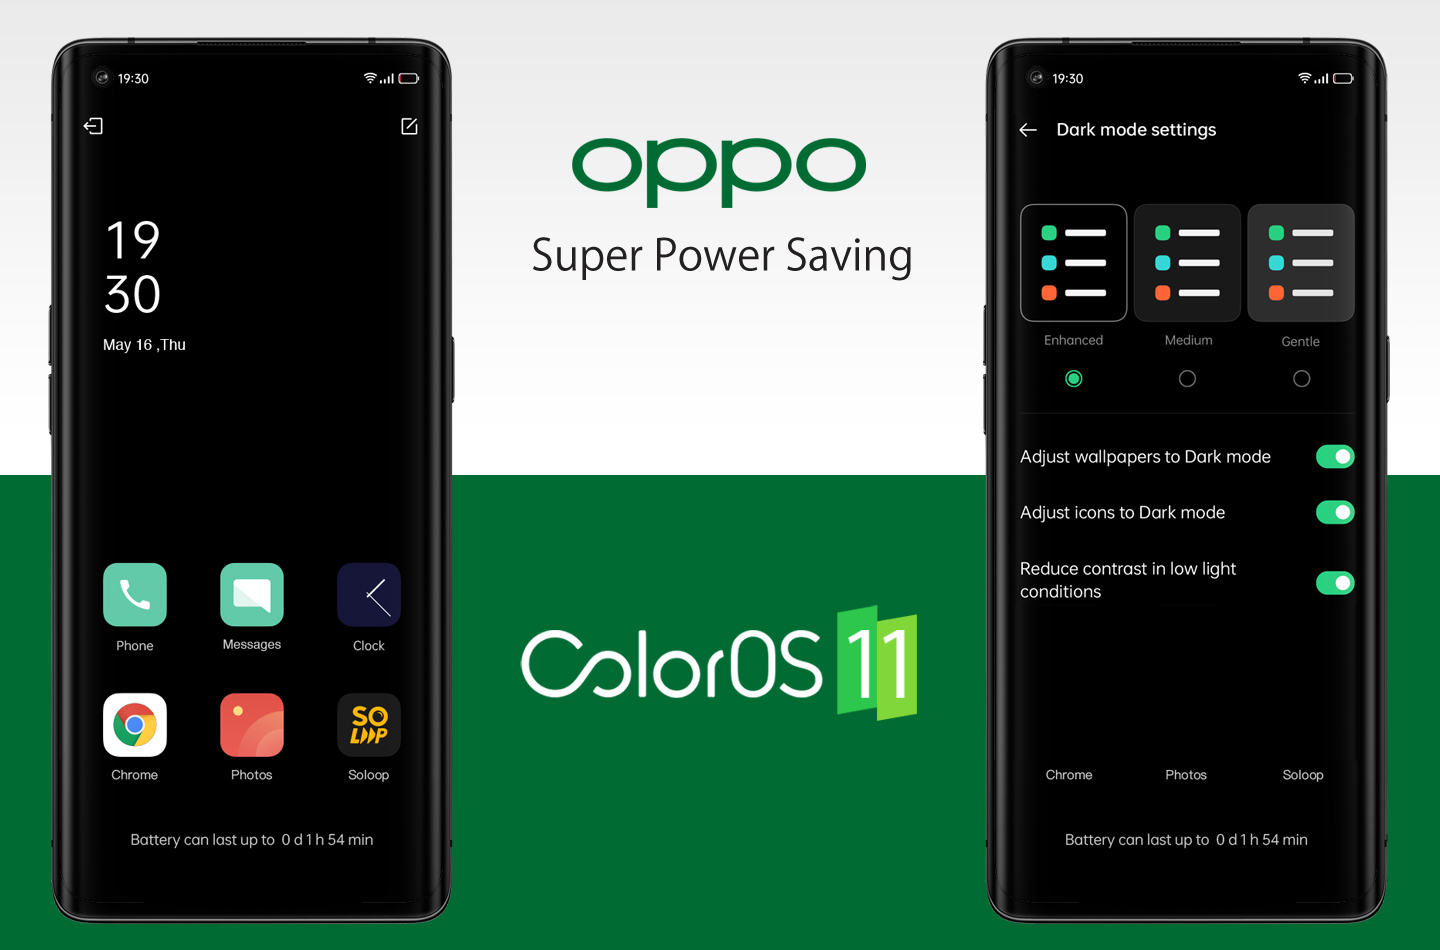 OPPO Color OS 11